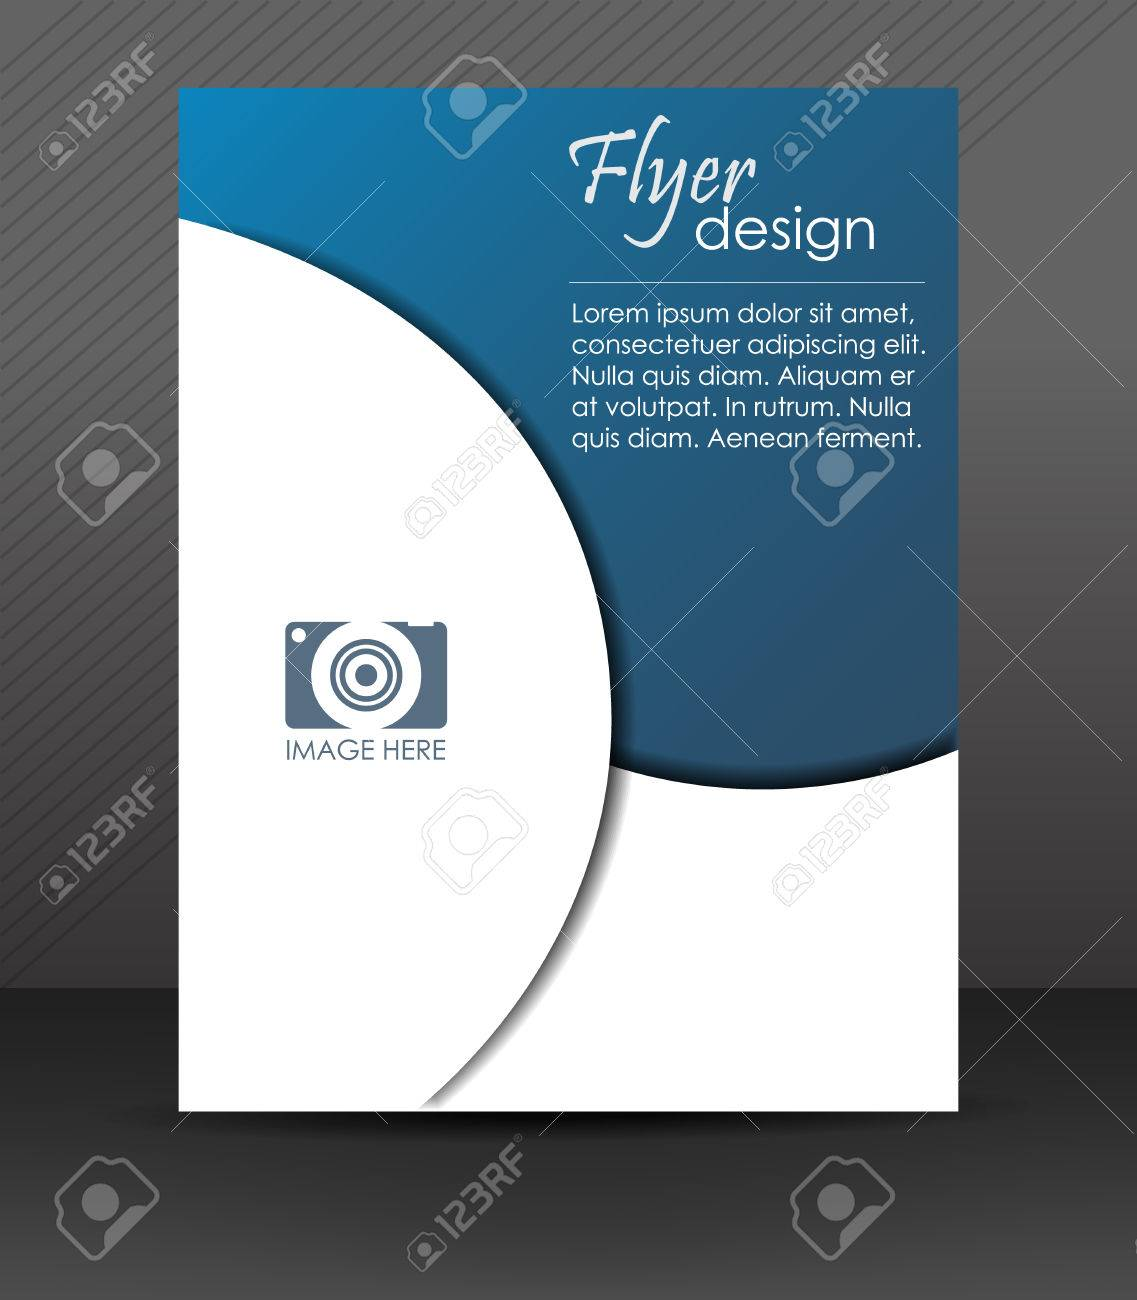 professional business flyer template brochure cover design professional business flyer template brochure cover design or corporate banner stock vector 32163418